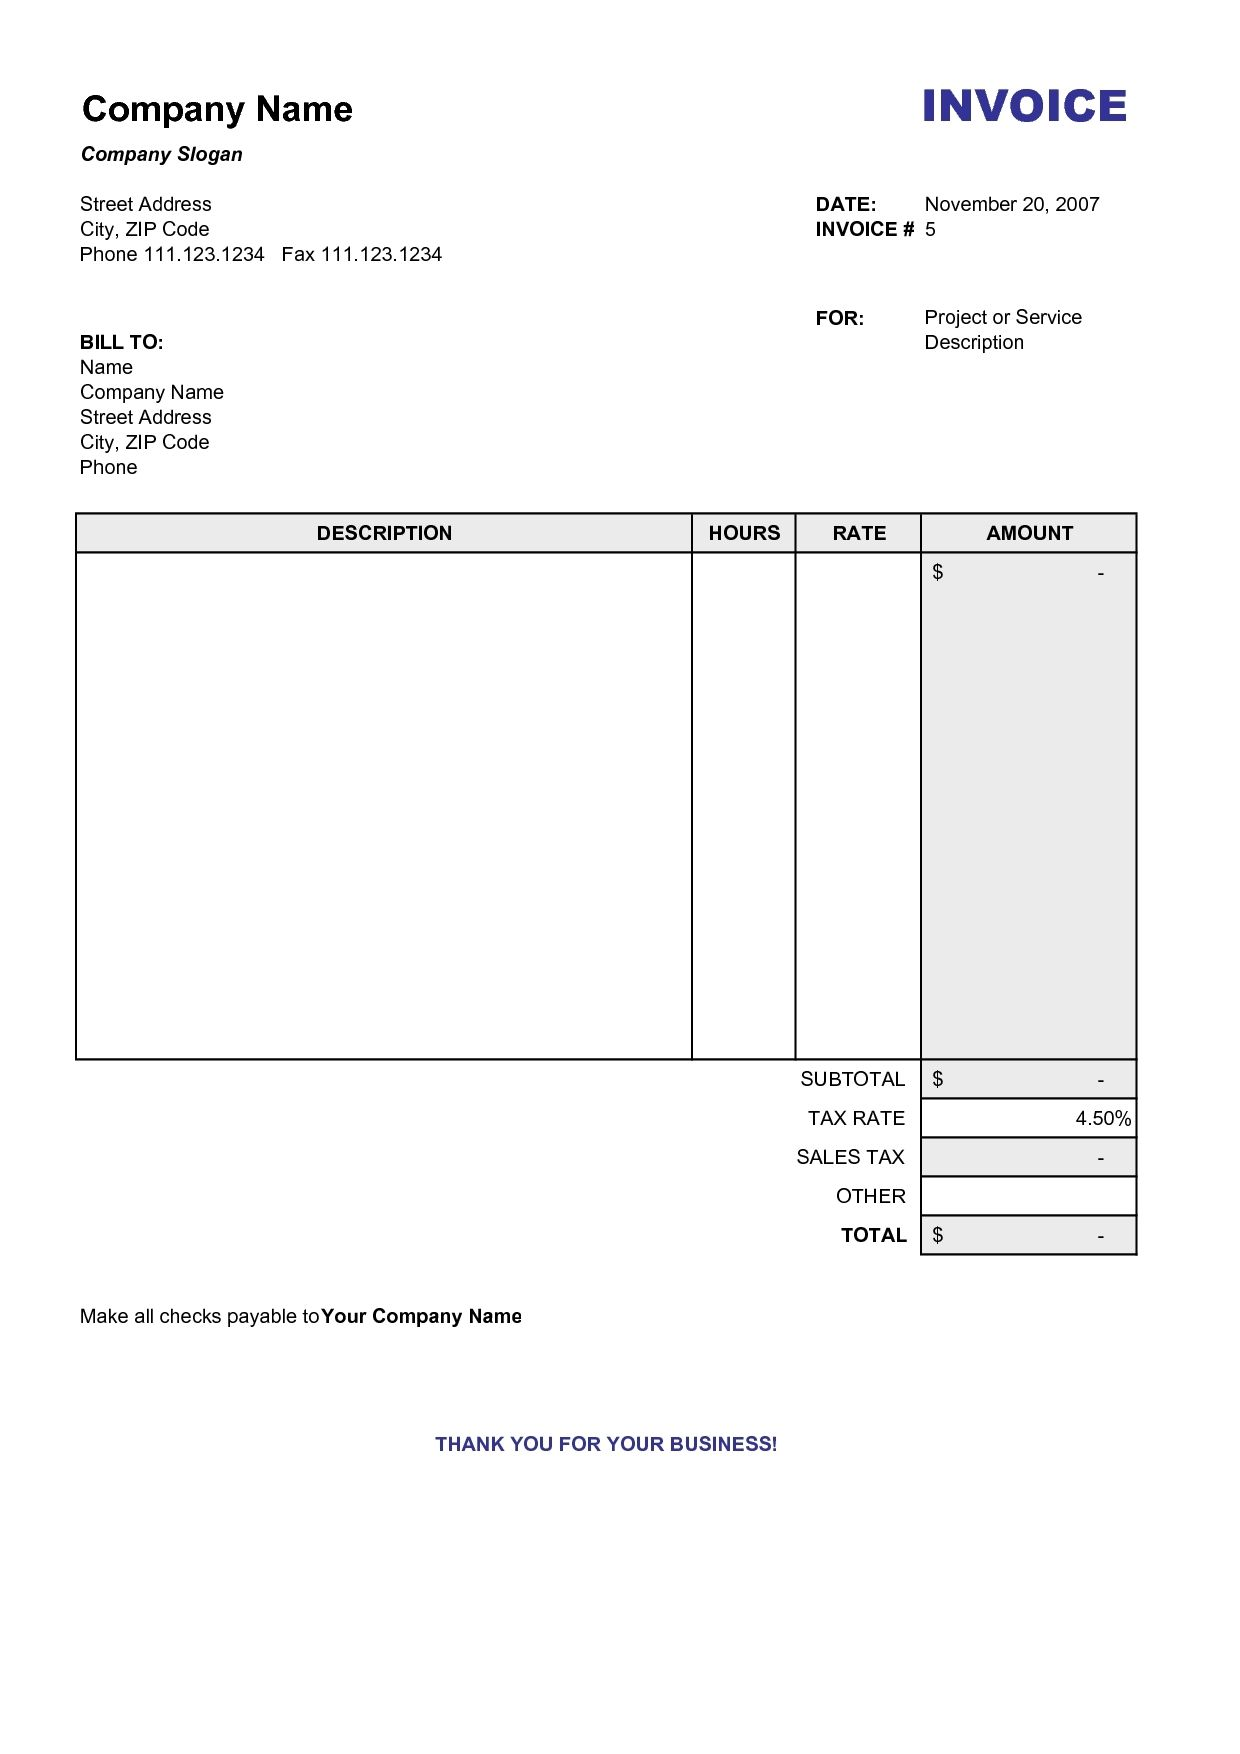 Copy Of A Blank Invoice Invoice Template Free Copy Of Blank - Blank invoice pdf